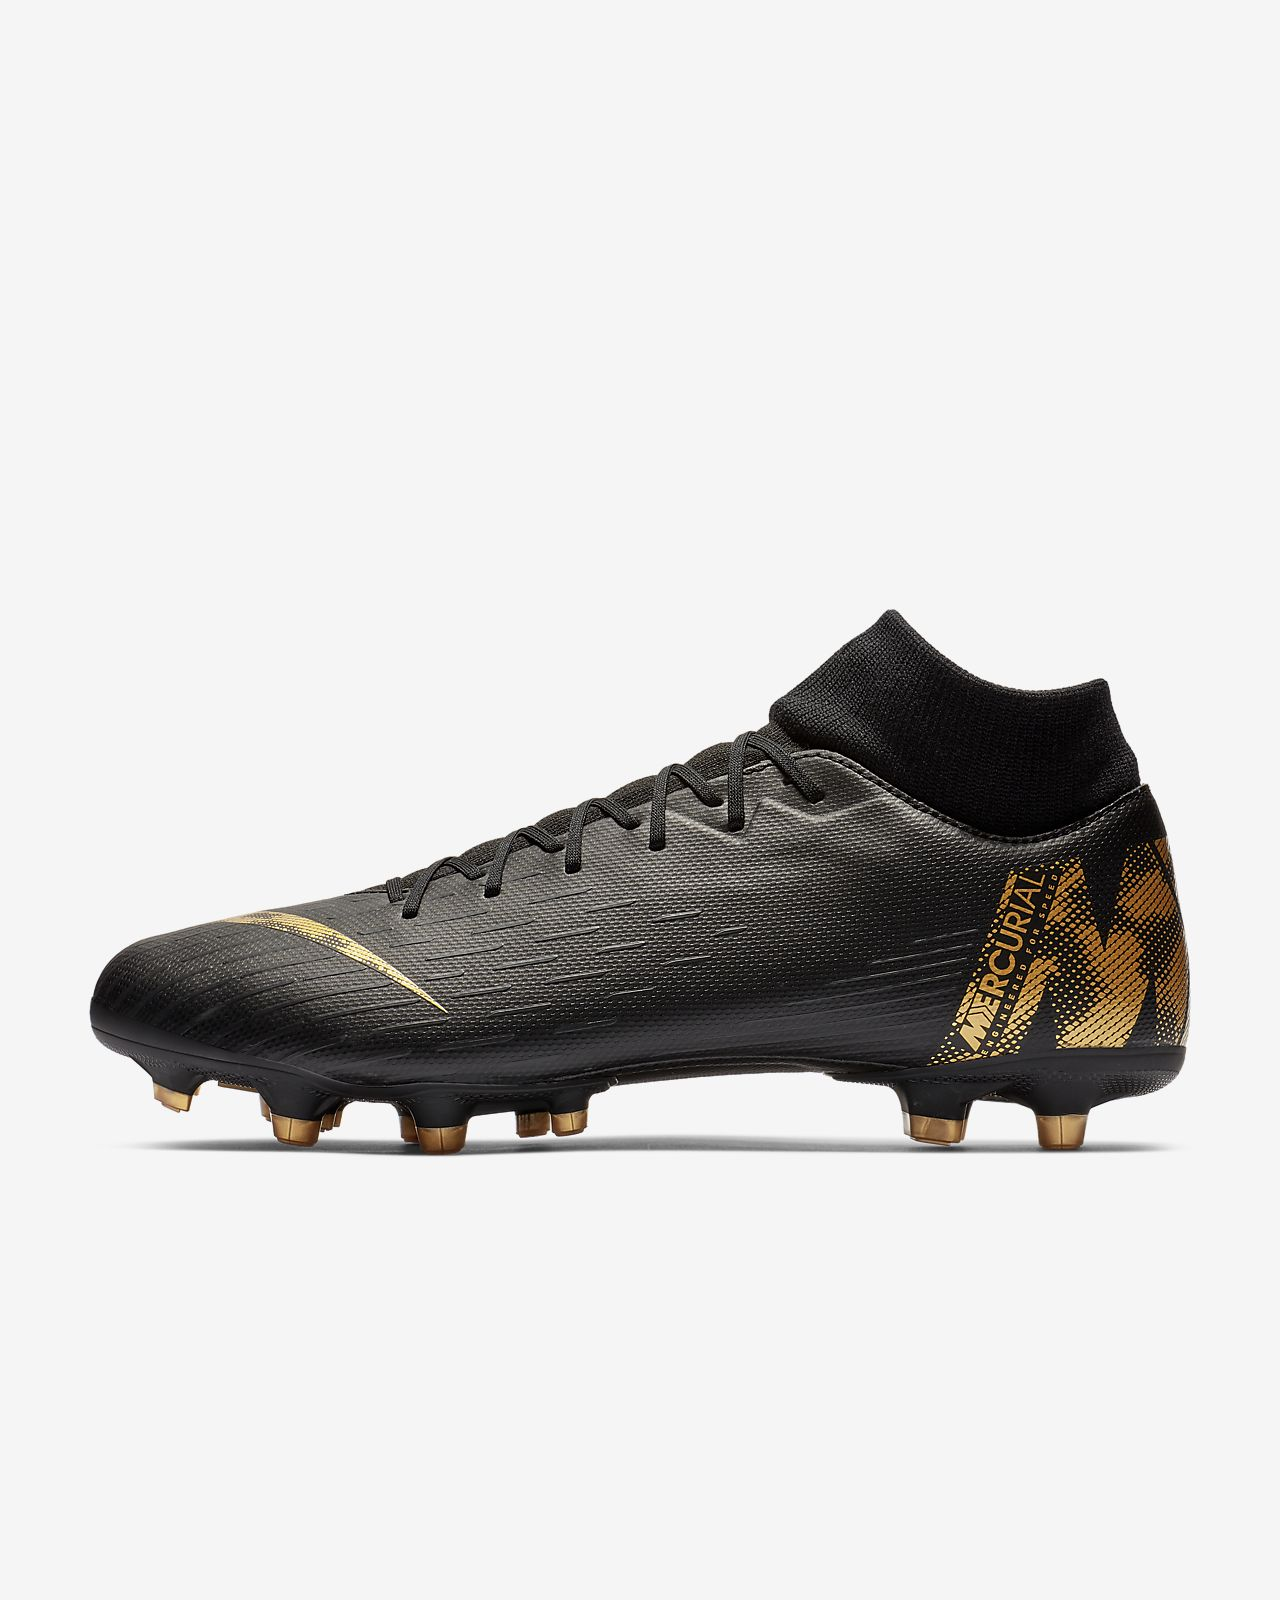 5df4bda7d68 Nike Mercurial Superfly 6 Academy MG Multi-Ground Soccer Cleat. Nike.com